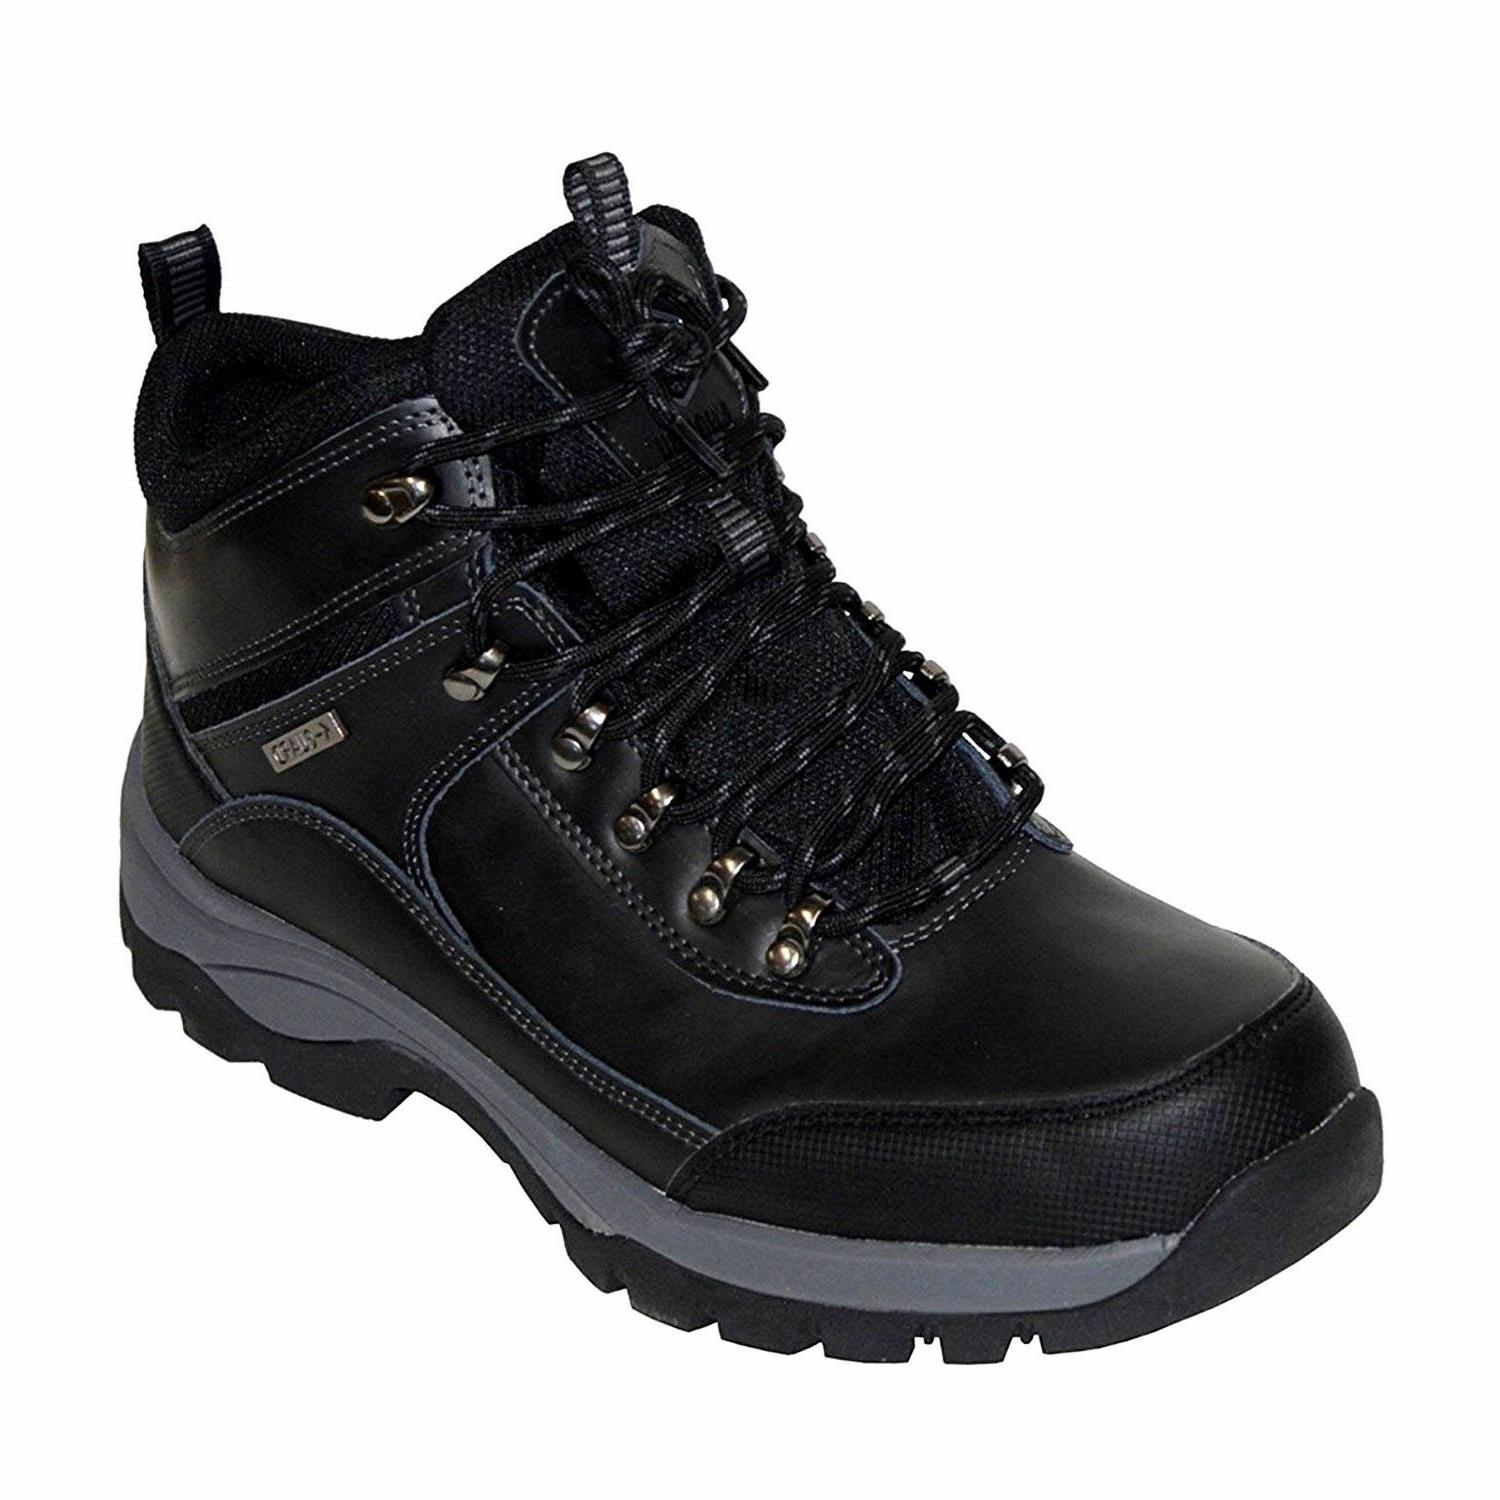 NEW - Khombu Men's Leather Hiker Boots BLACK Summit Hiking T